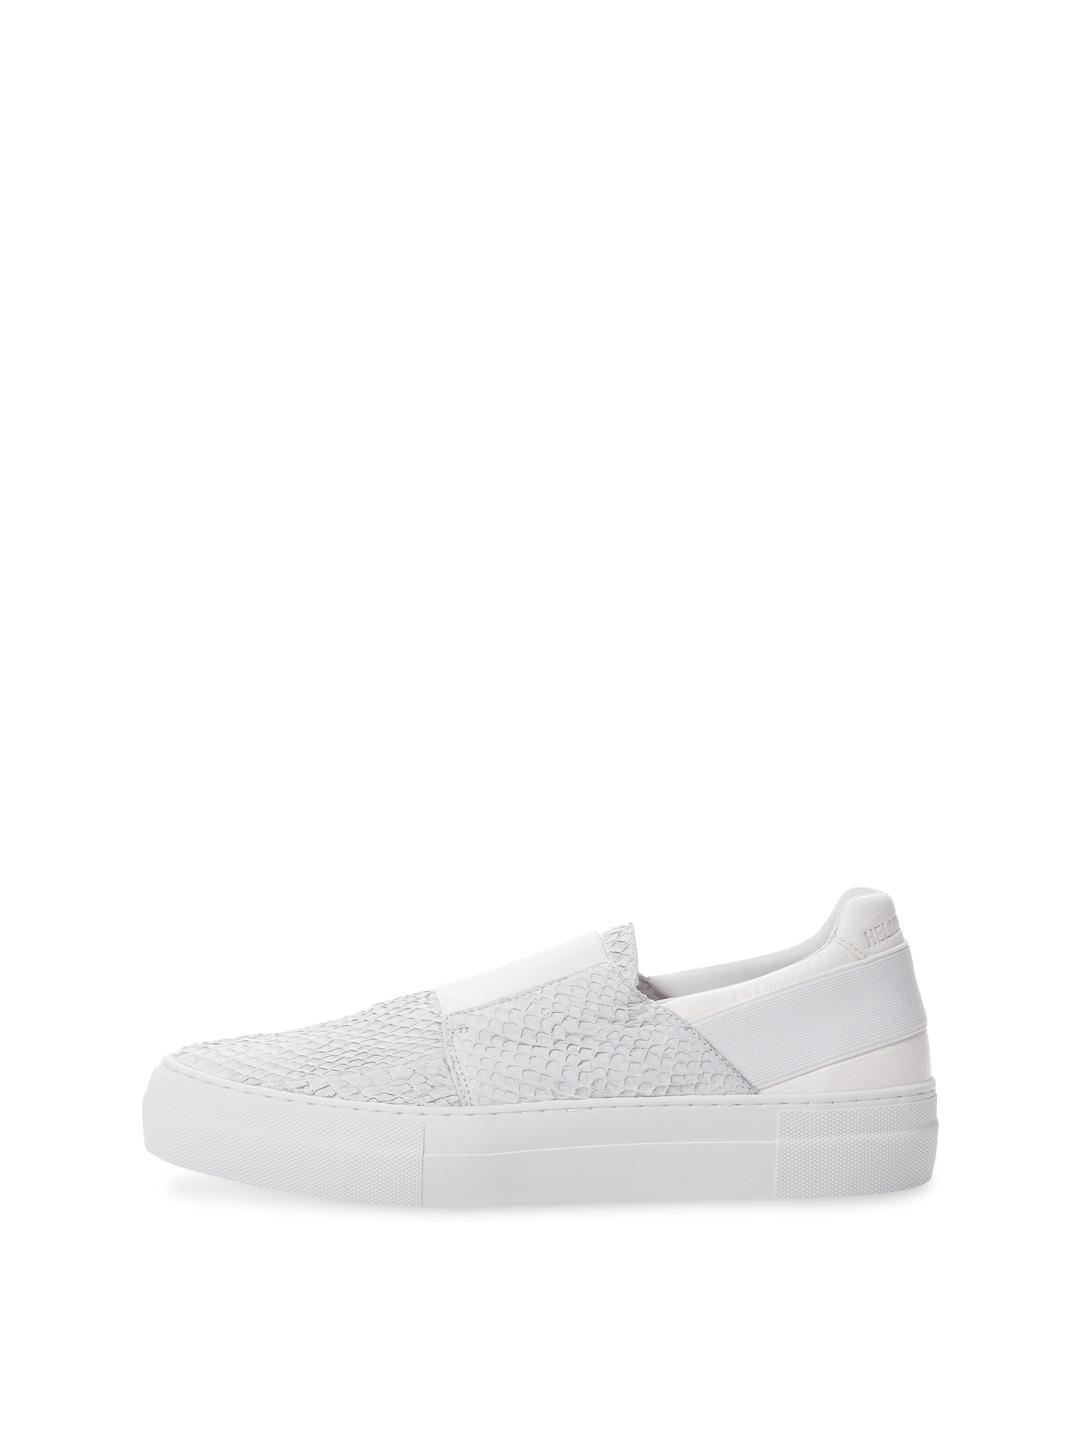 Helmut Lang Leather Washed Scale Slip-on Sneaker in White